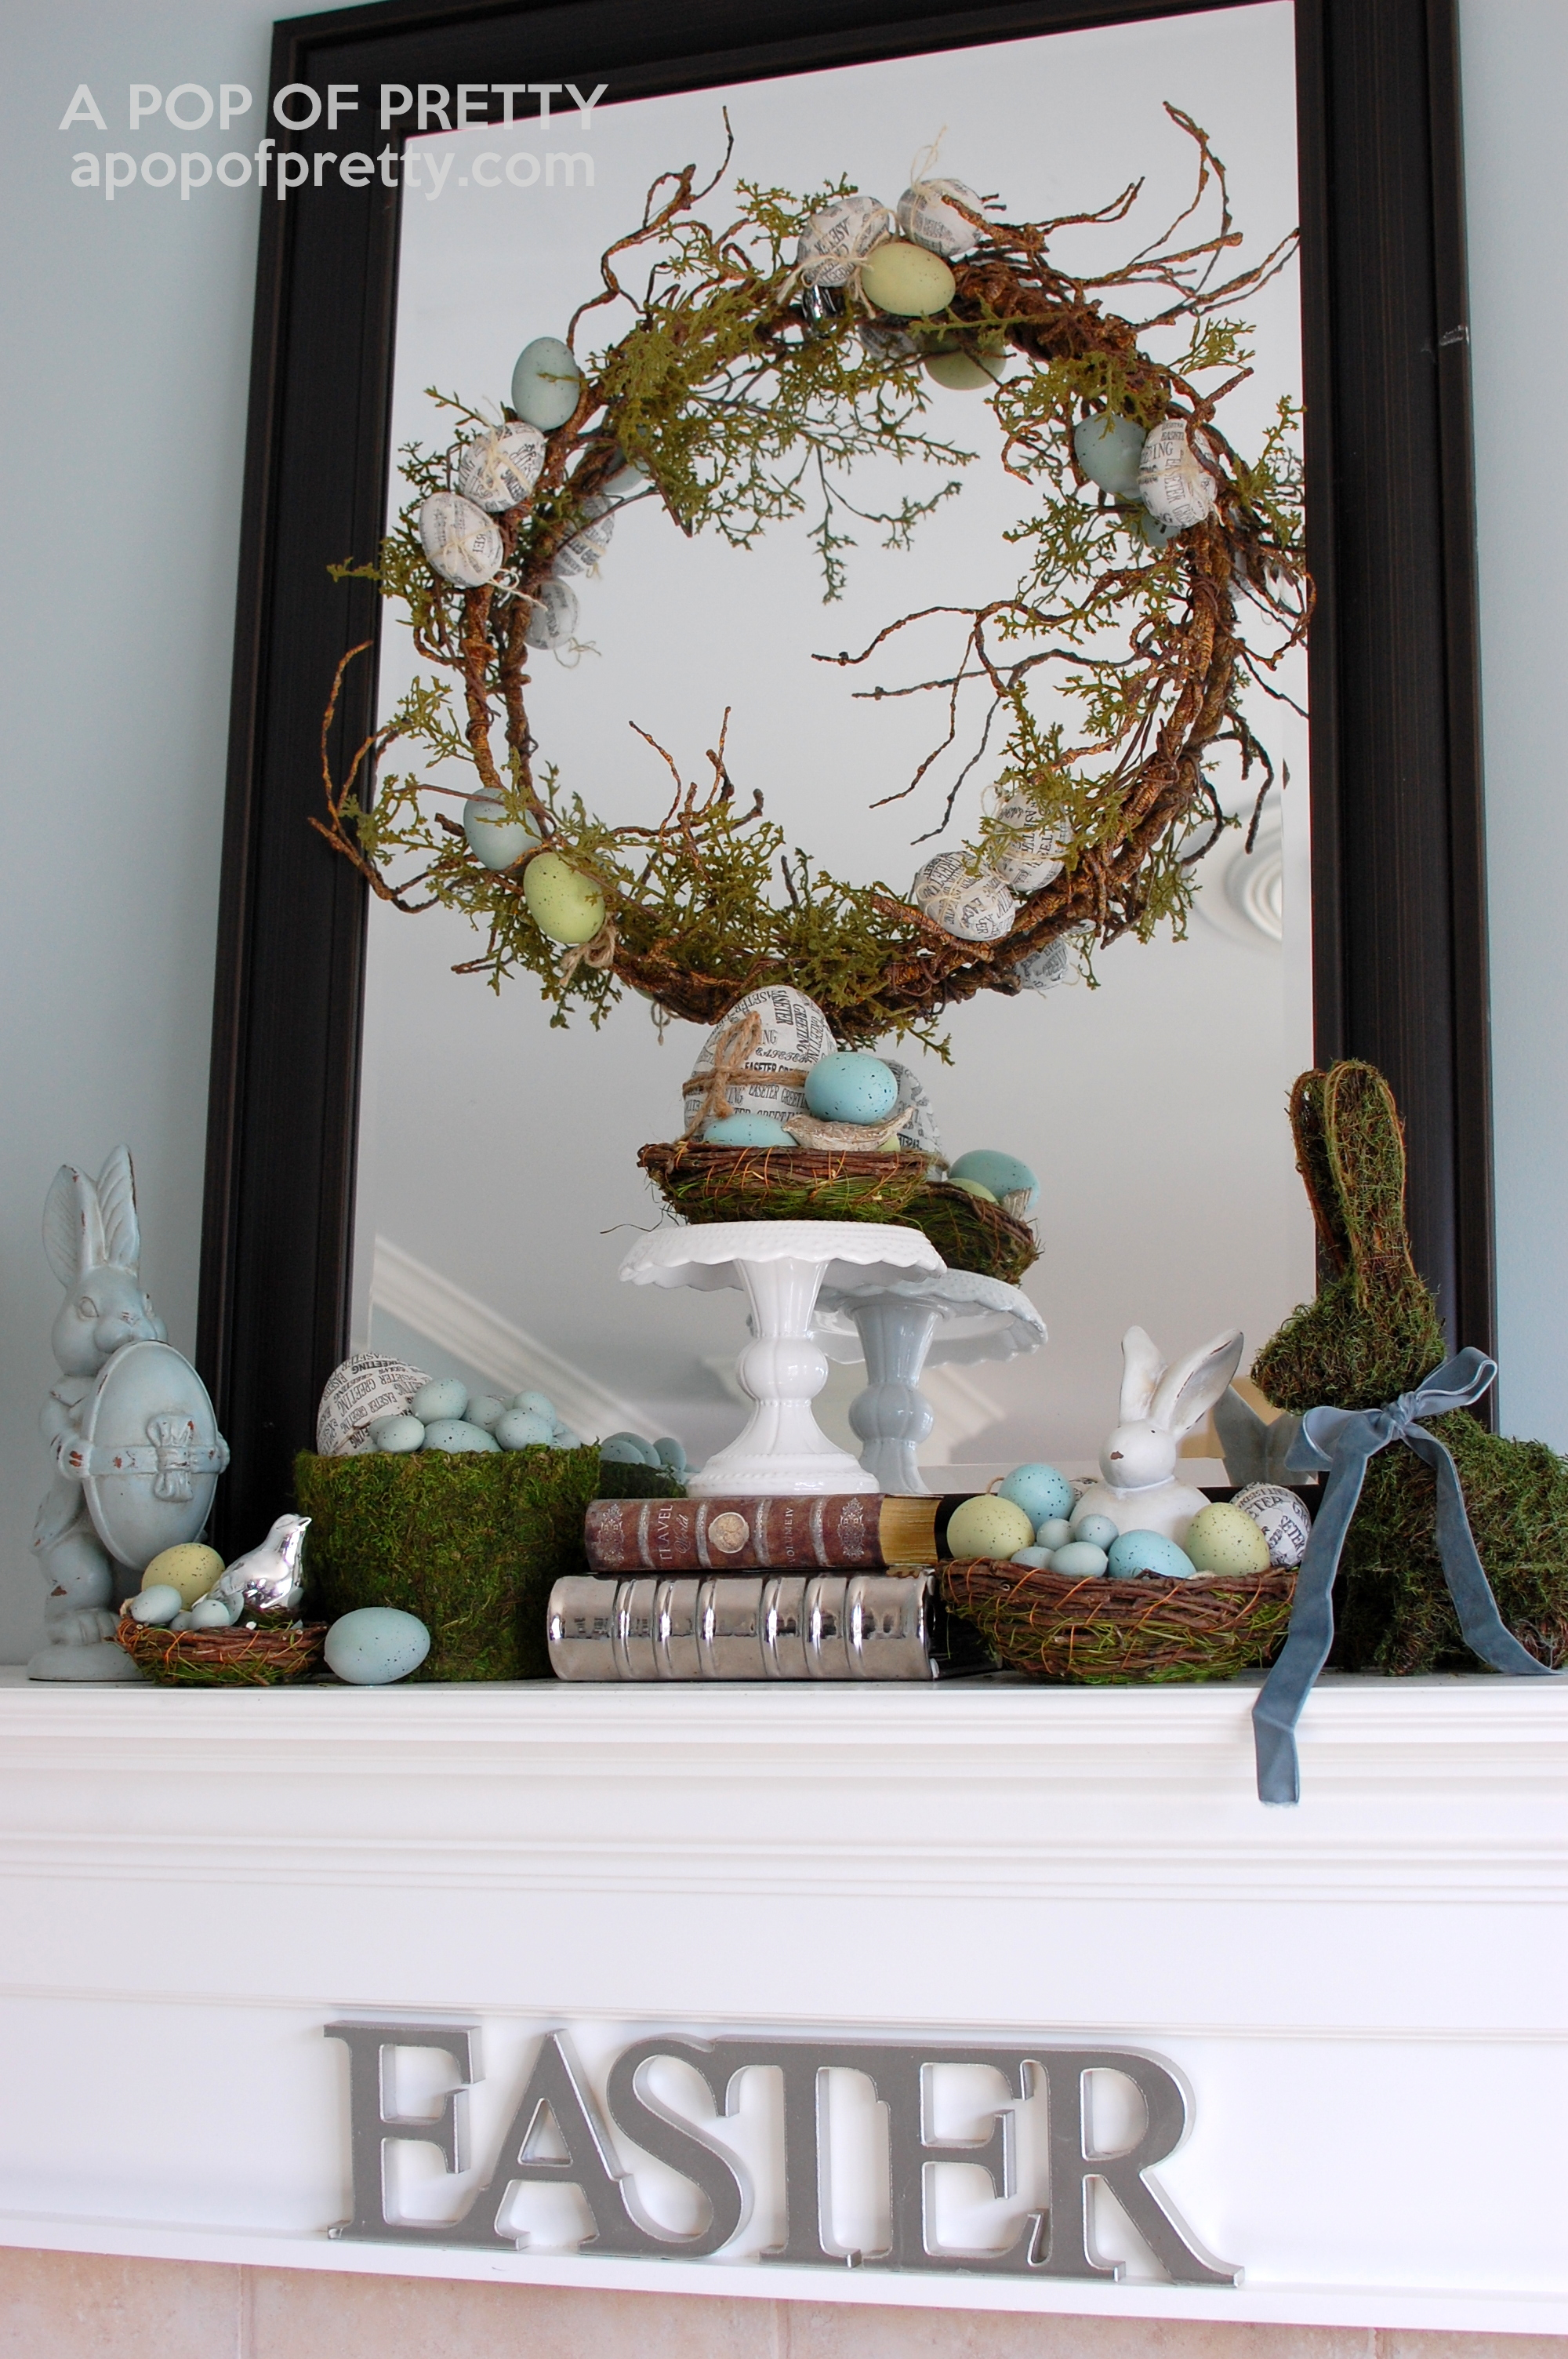 Easter decorating ideas Easter mantel A Pop of Pretty Blog